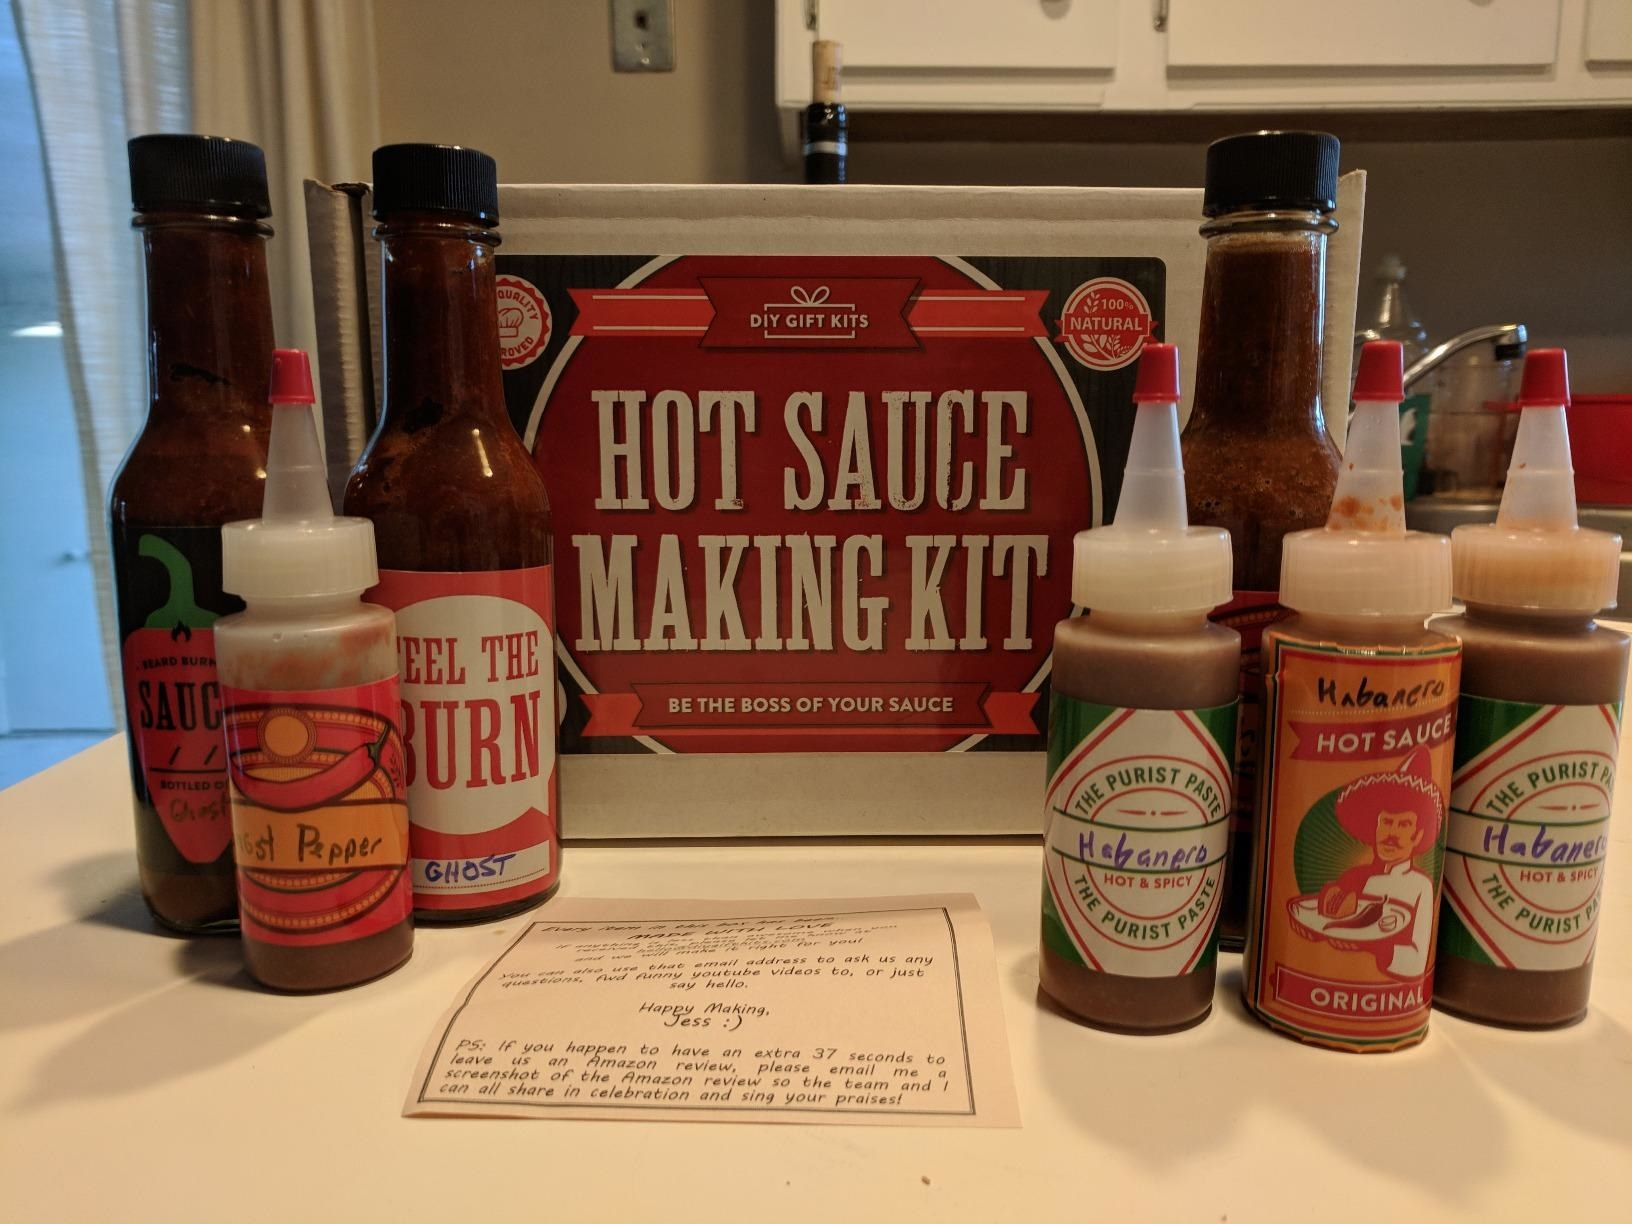 Seven kinds of homemade hot sauce bottled in front of the hot sauce making kit.